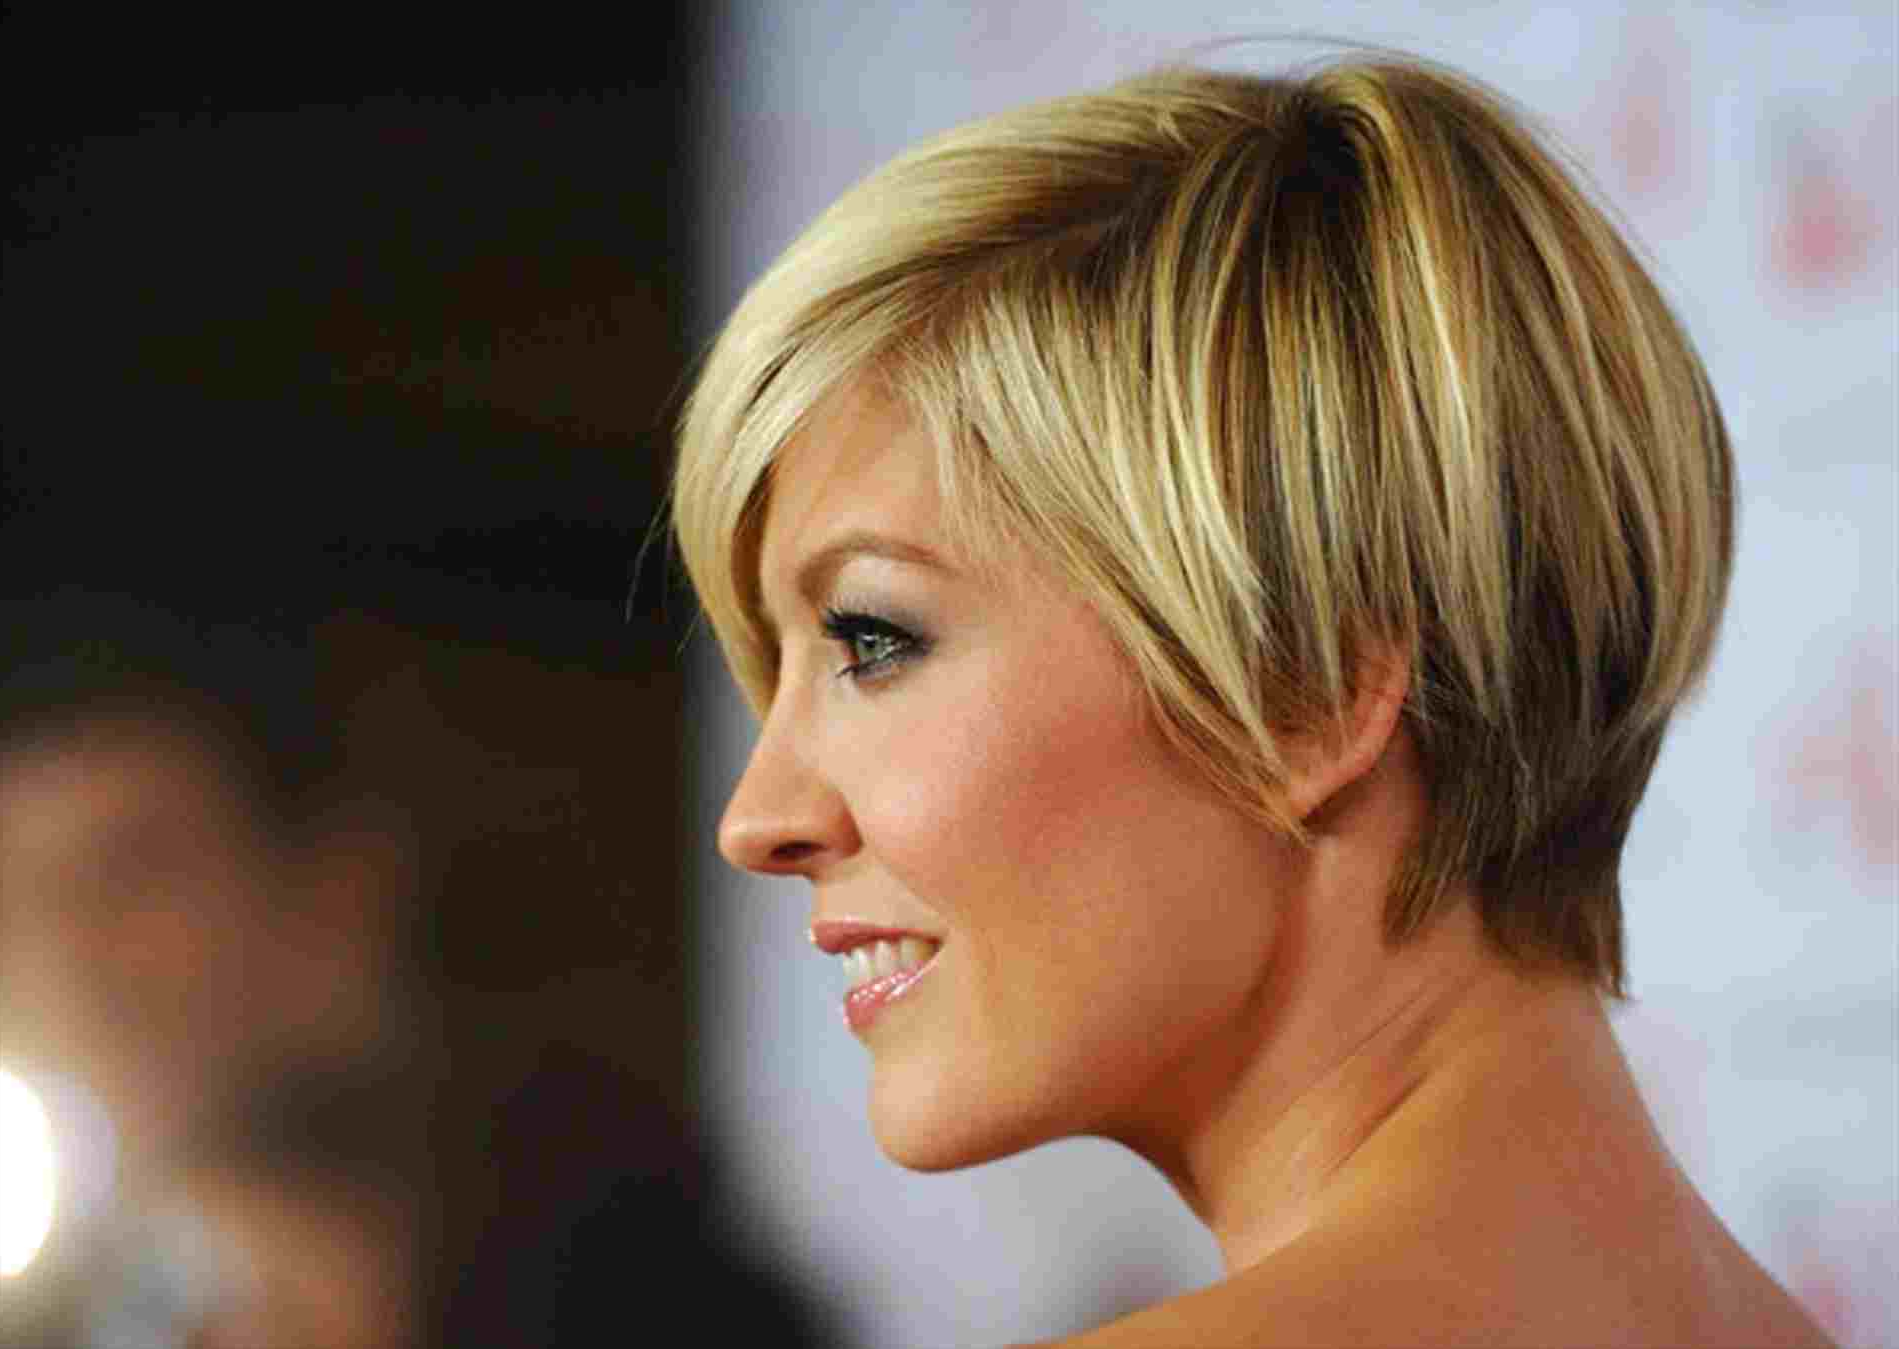 Gray Or Silver Hair Grey Rhpinterestcouk Why Funky Short Hairstyles Throughout Short Funky Hairstyles For Over 40 (Gallery 21 of 25)